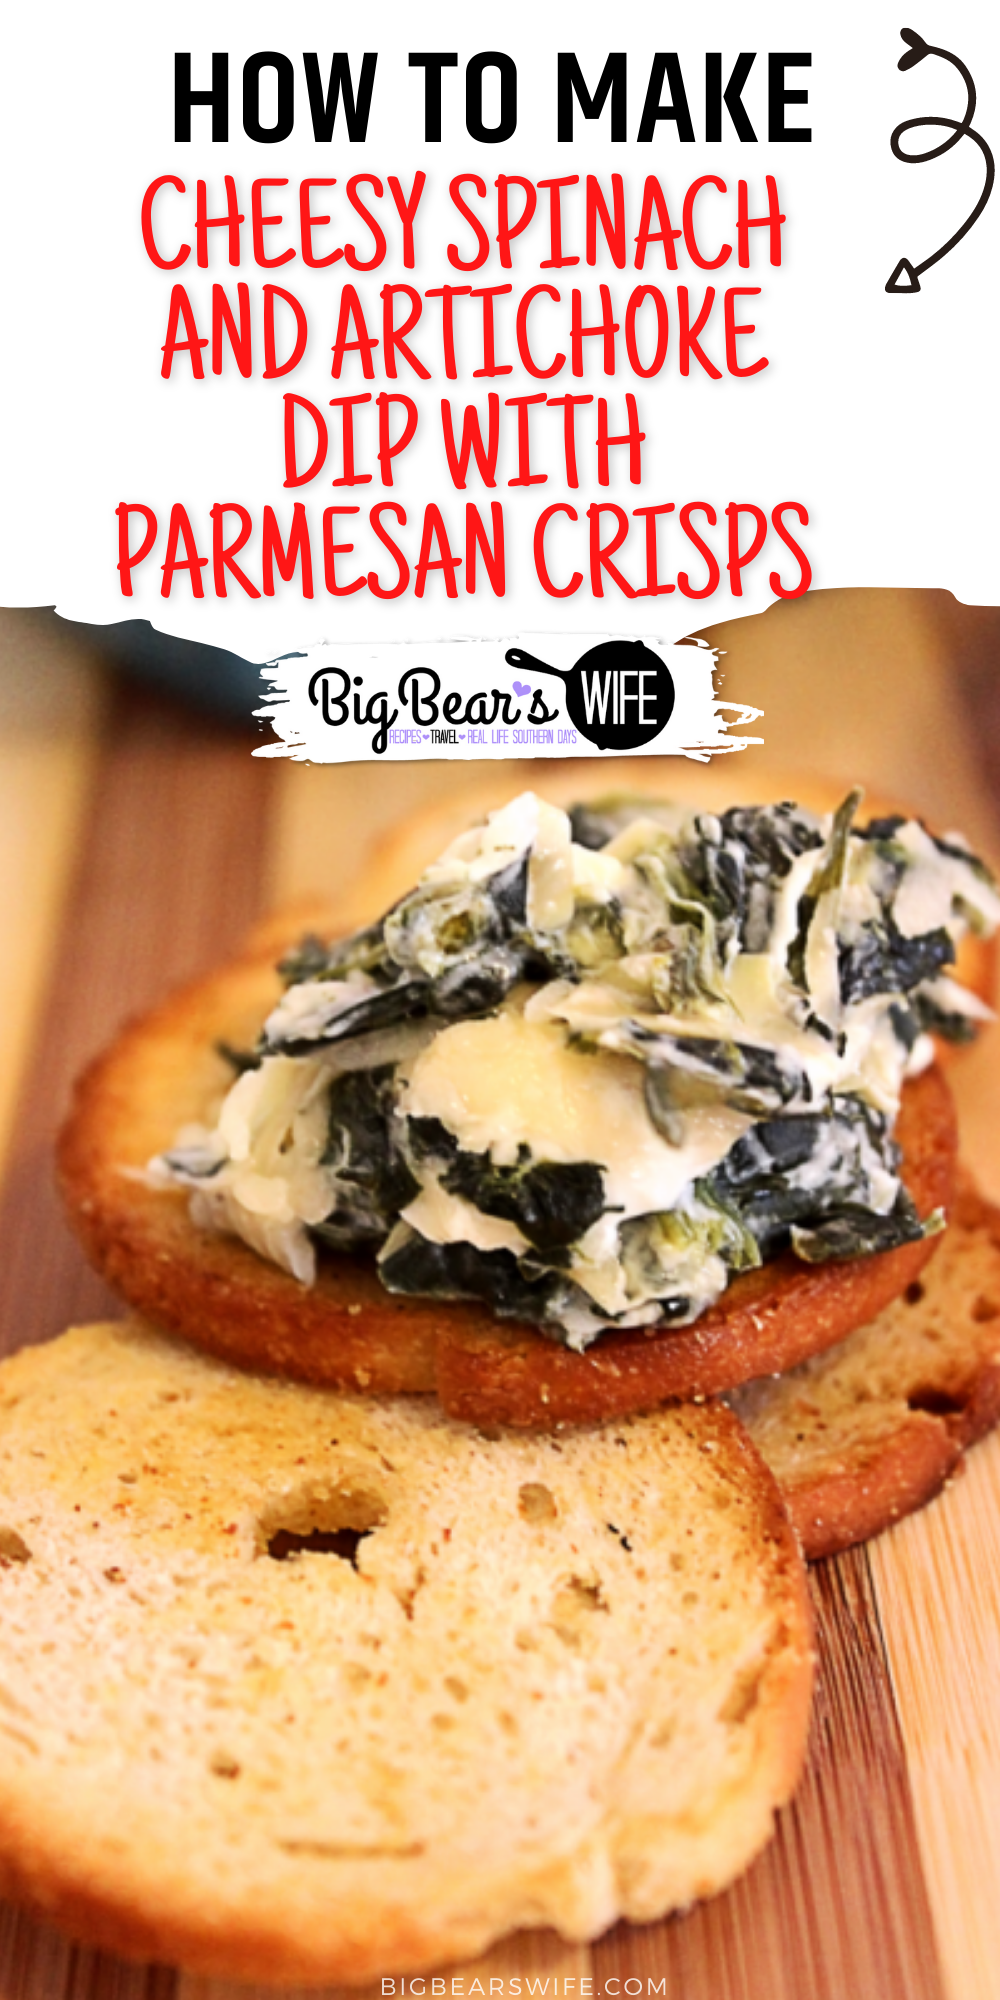 A super delicious Cheesy Spinach and Artichoke Dip with Parmesan Crisps that's perfect for parties and holidays! via @bigbearswife